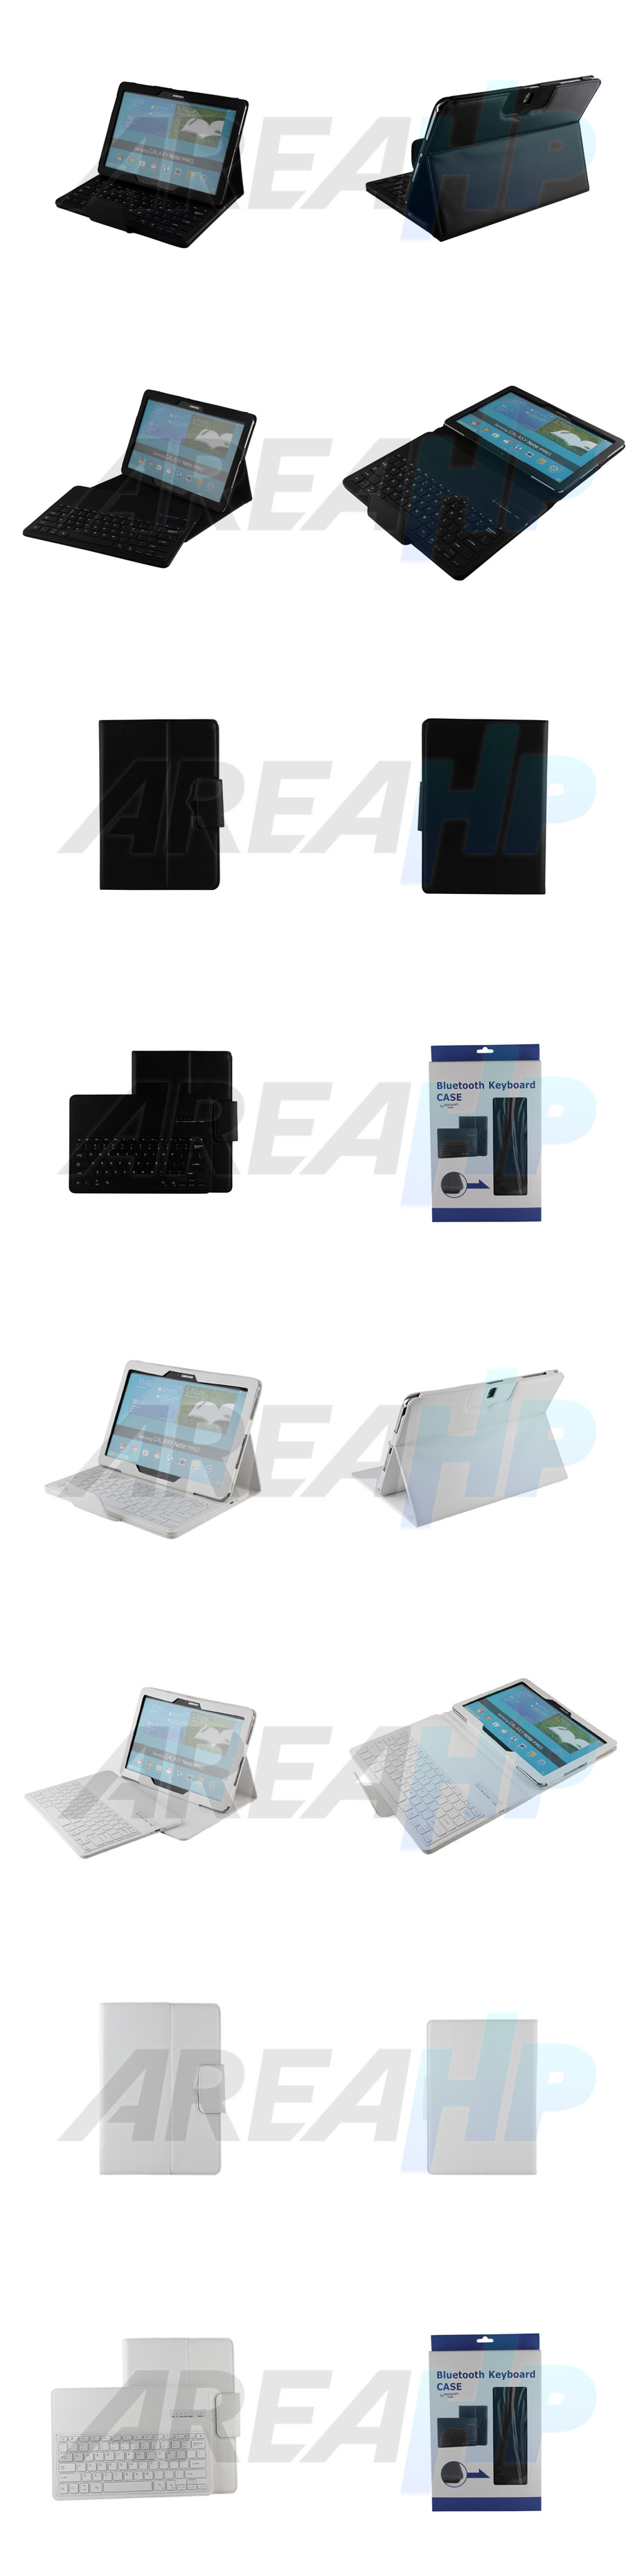 Removable Keyboard Leather Case for Samsung Galaxy Note Pro 12.2 P900 Overview